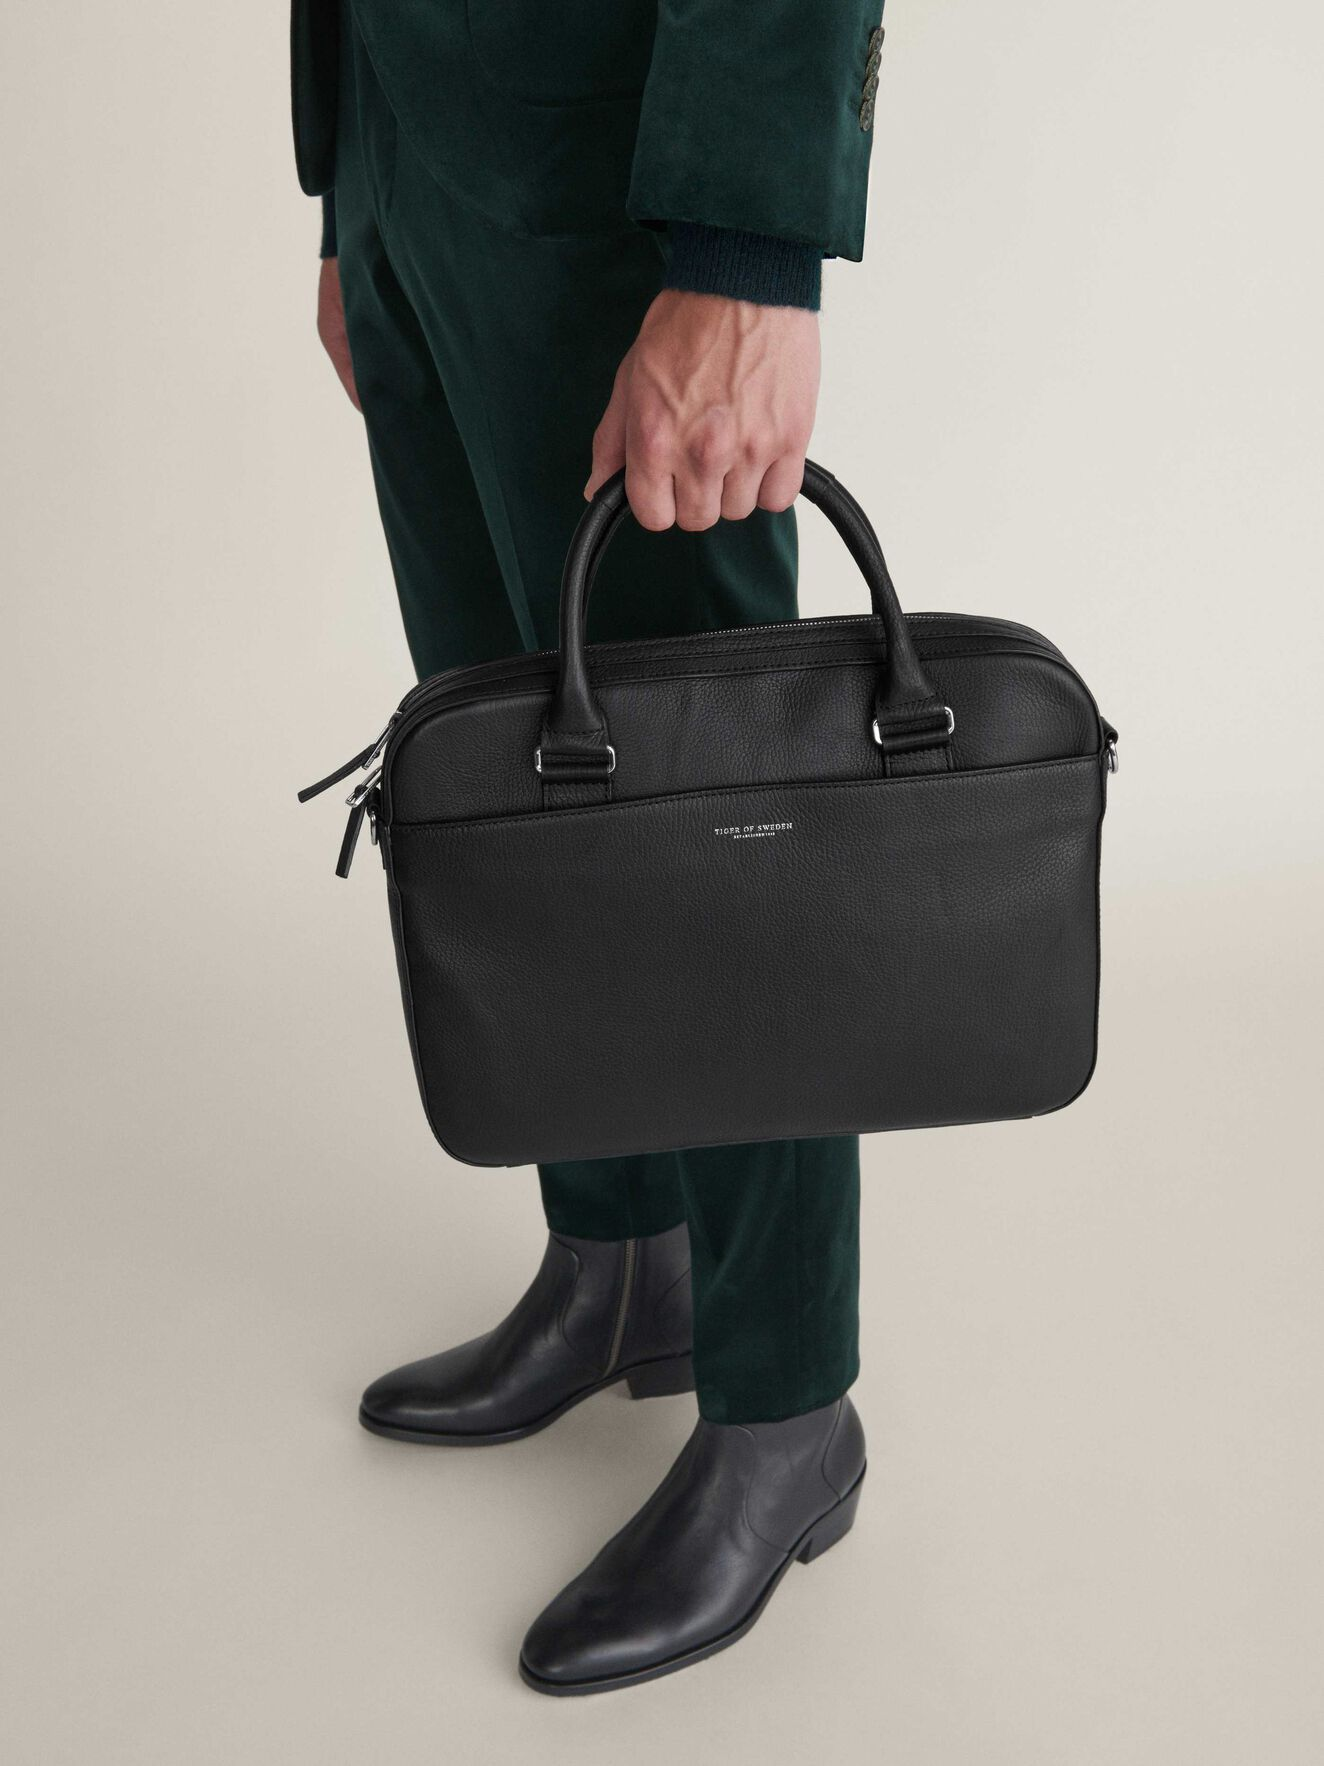 Dalio 2 Briefcase in Black from Tiger of Sweden